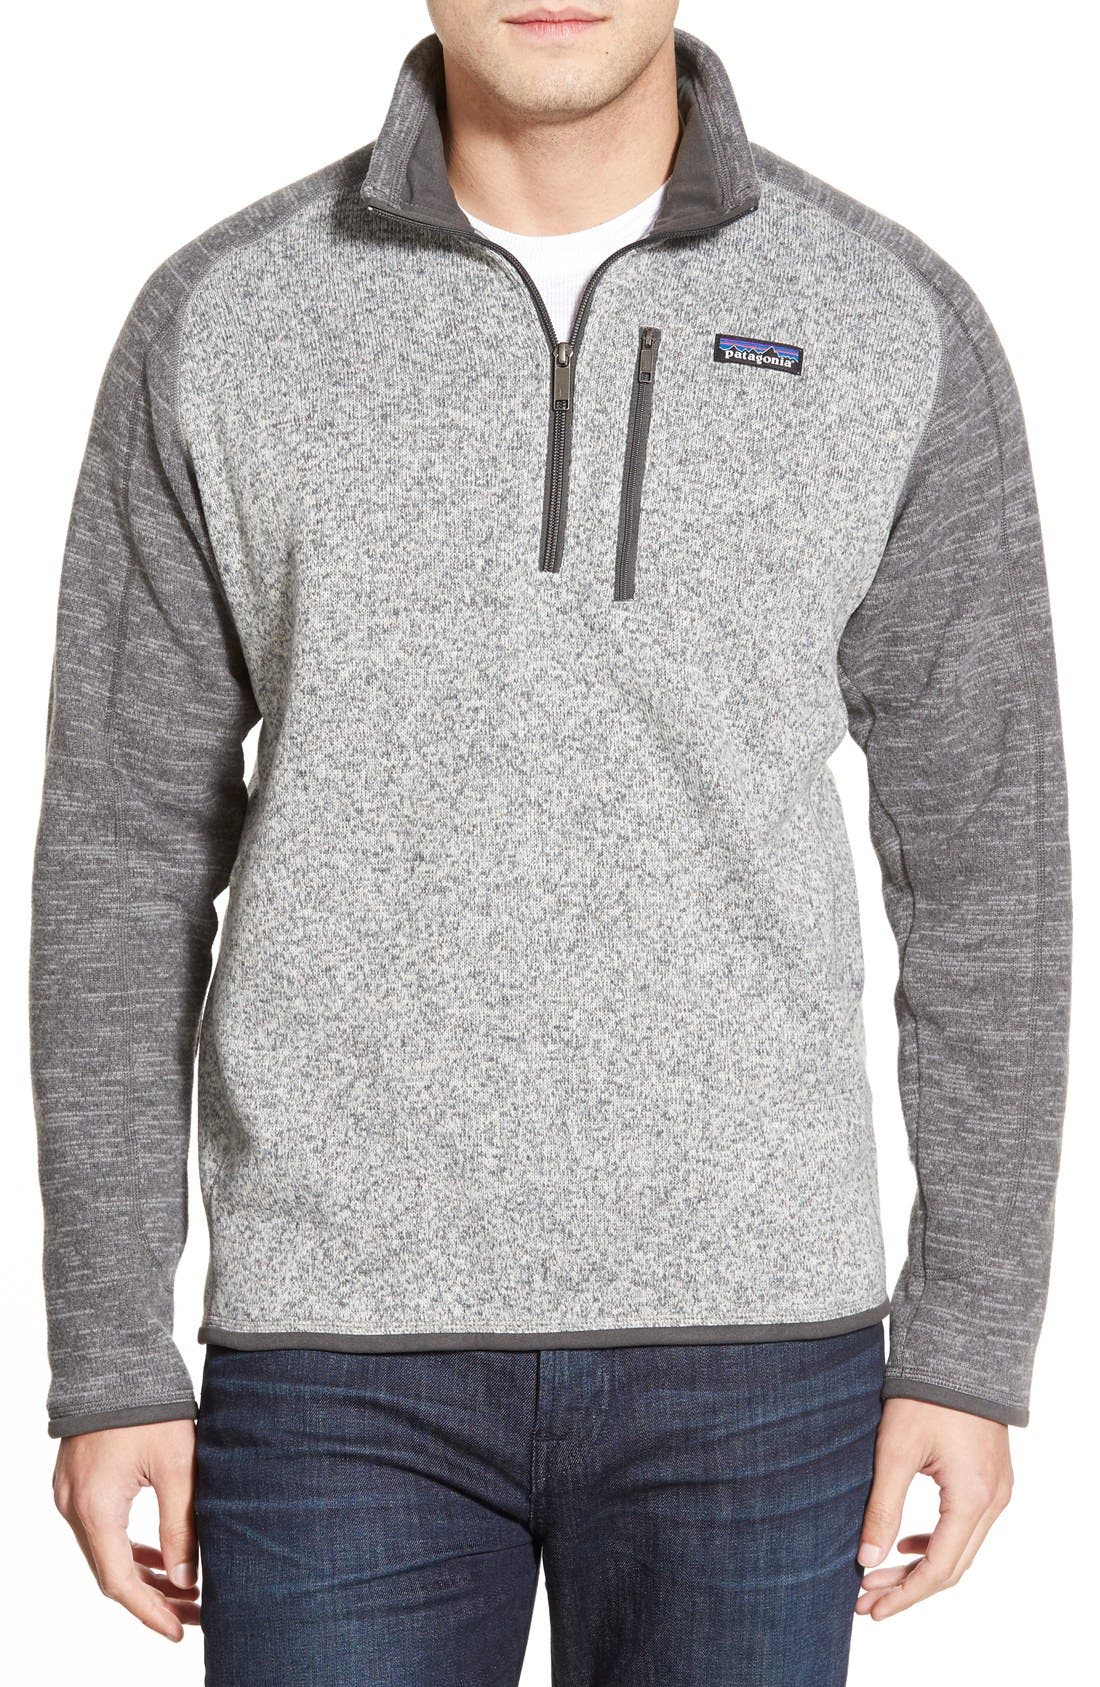 Alternate Image 1 Selected - Patagonia 'Better Sweater' Quarter Zip Pullover